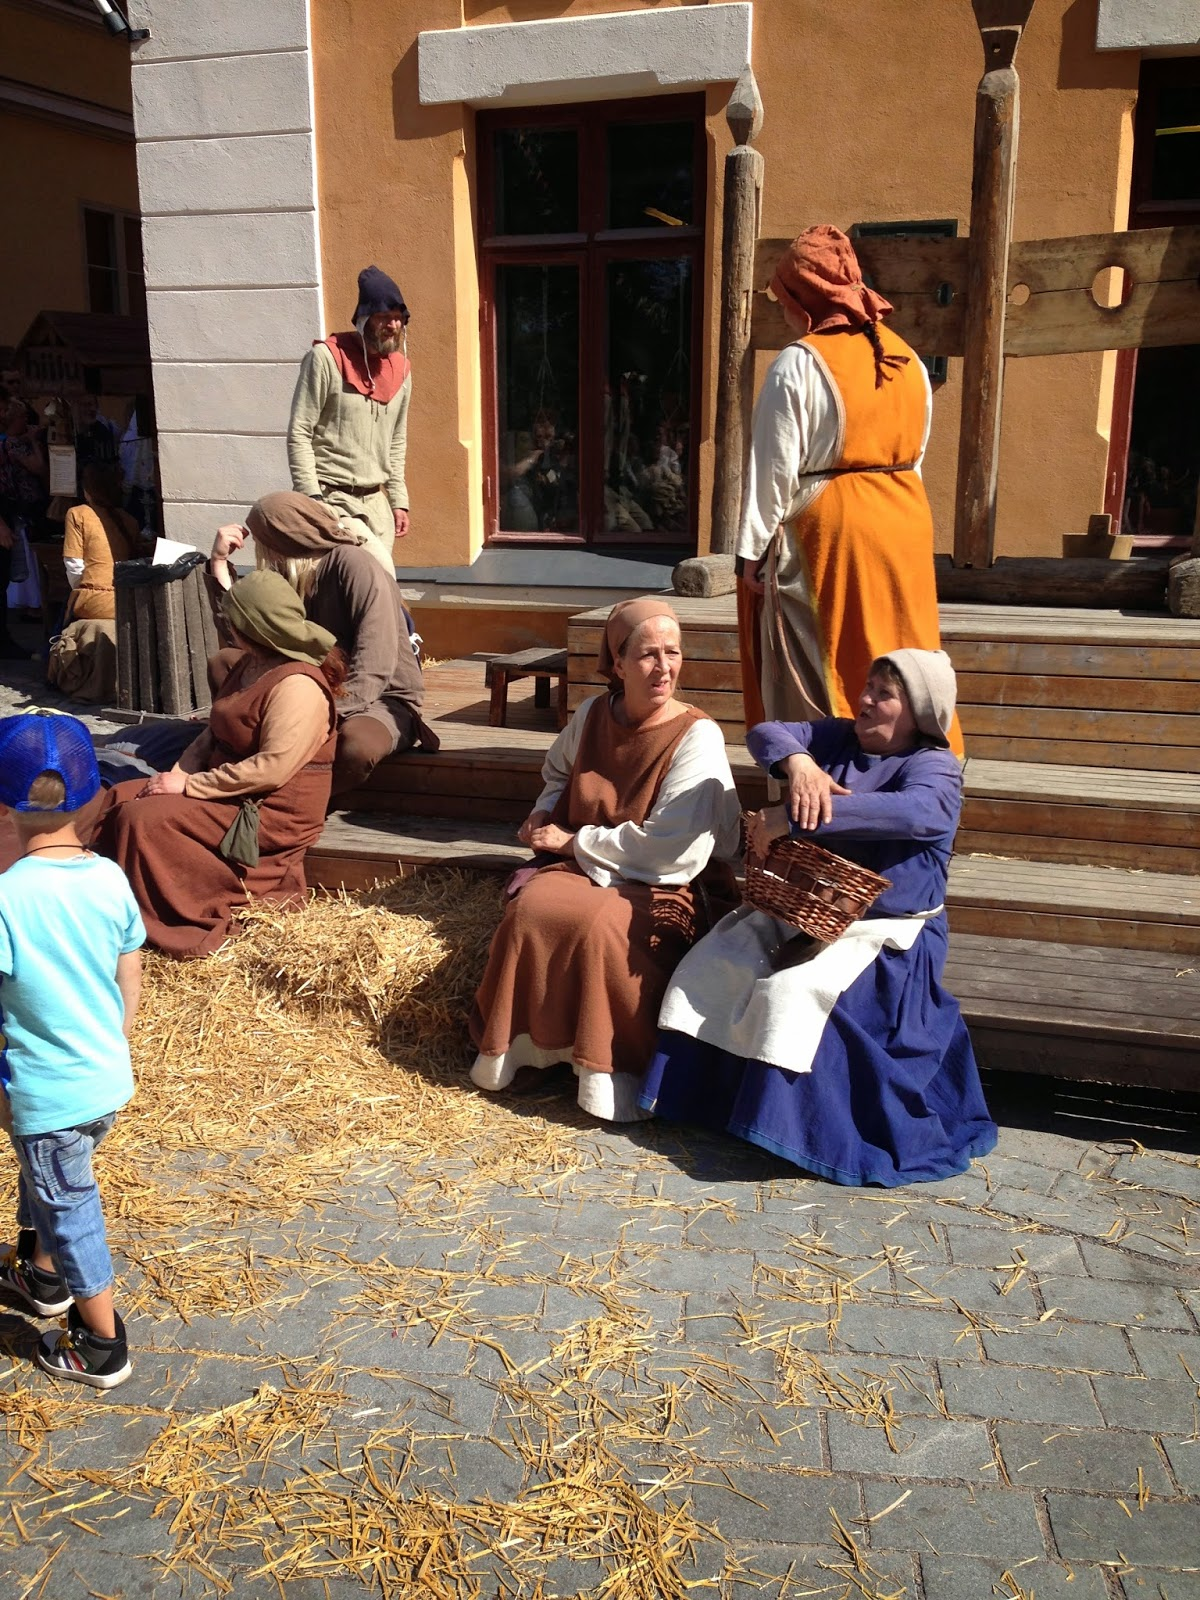 A picture of actors at a medieval market. Medieval people